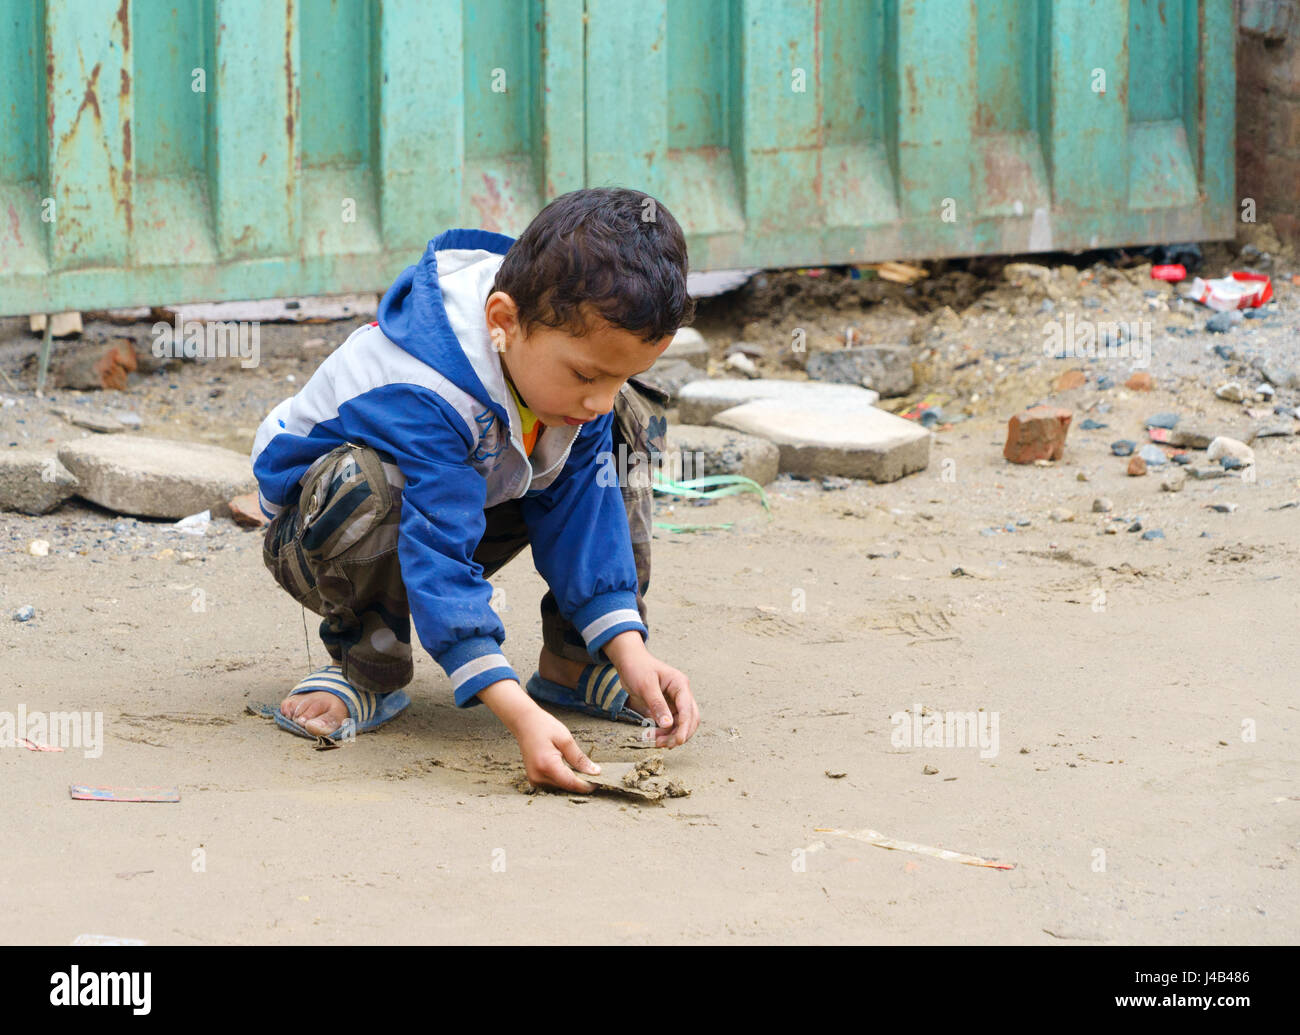 Young Nepalese boy playing with sand in Khatmandu. - Stock Image